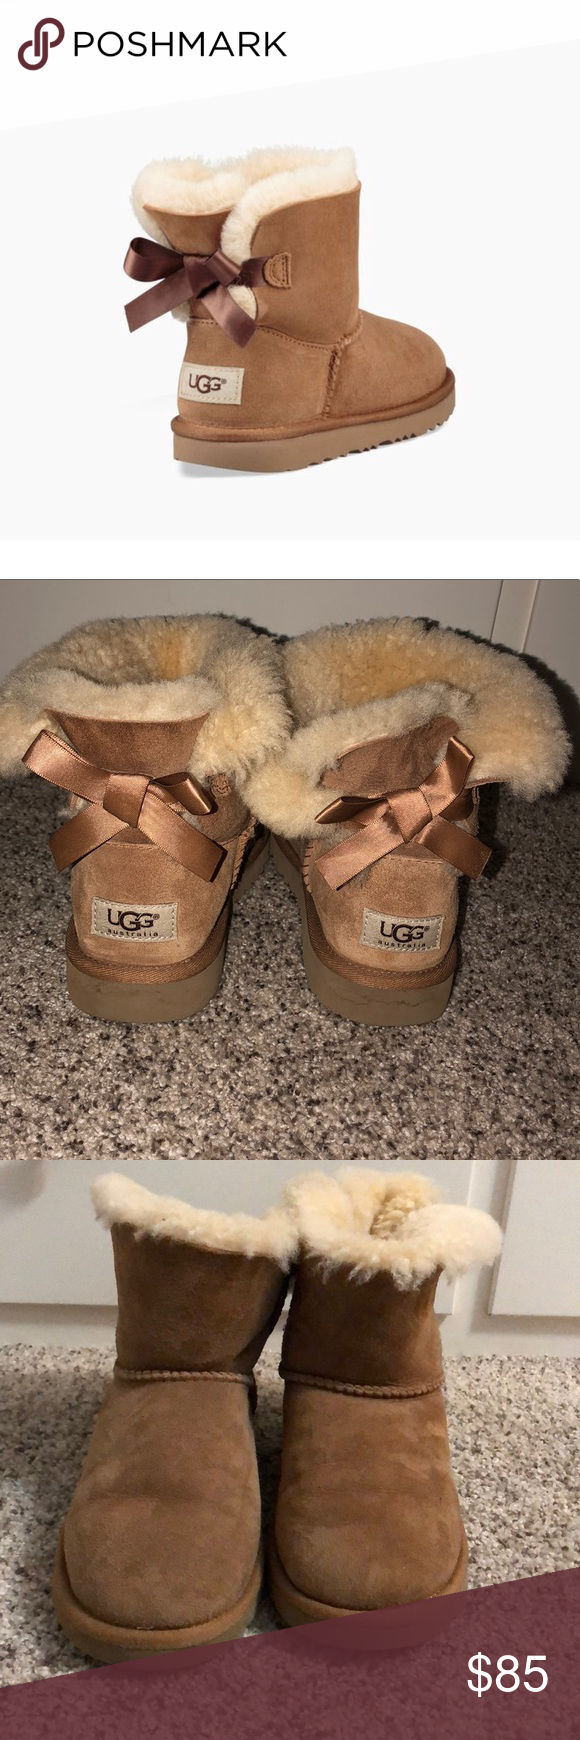 30f347c20ed Kids Tan Mini Bailey Bow II Boot Last picture has all the details ...